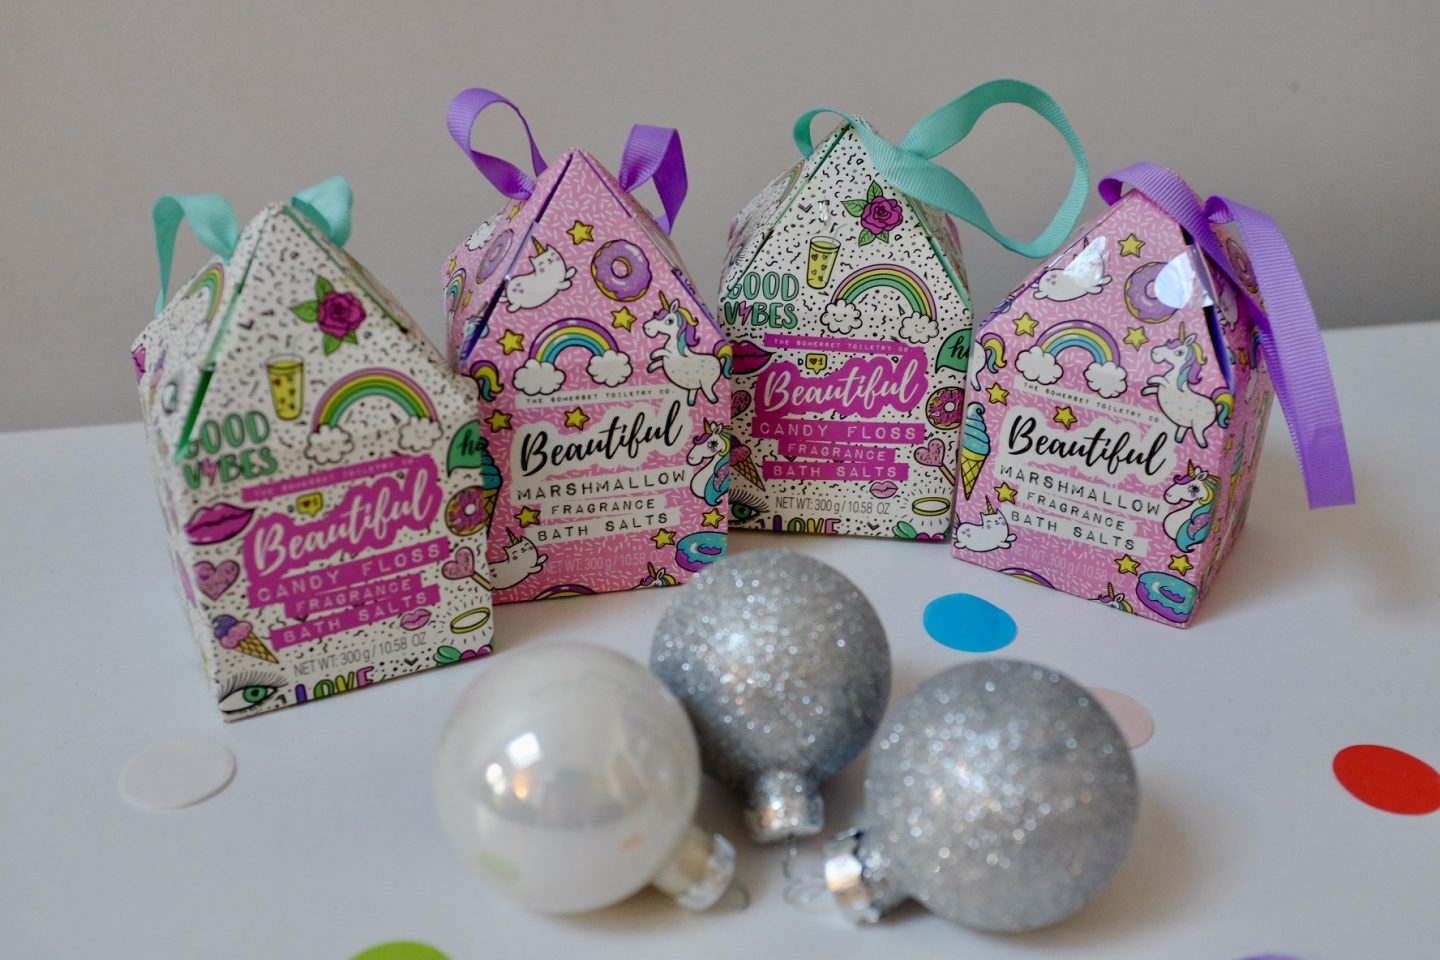 Bath salts -candy floss and marshmallow rainbow gift ideas